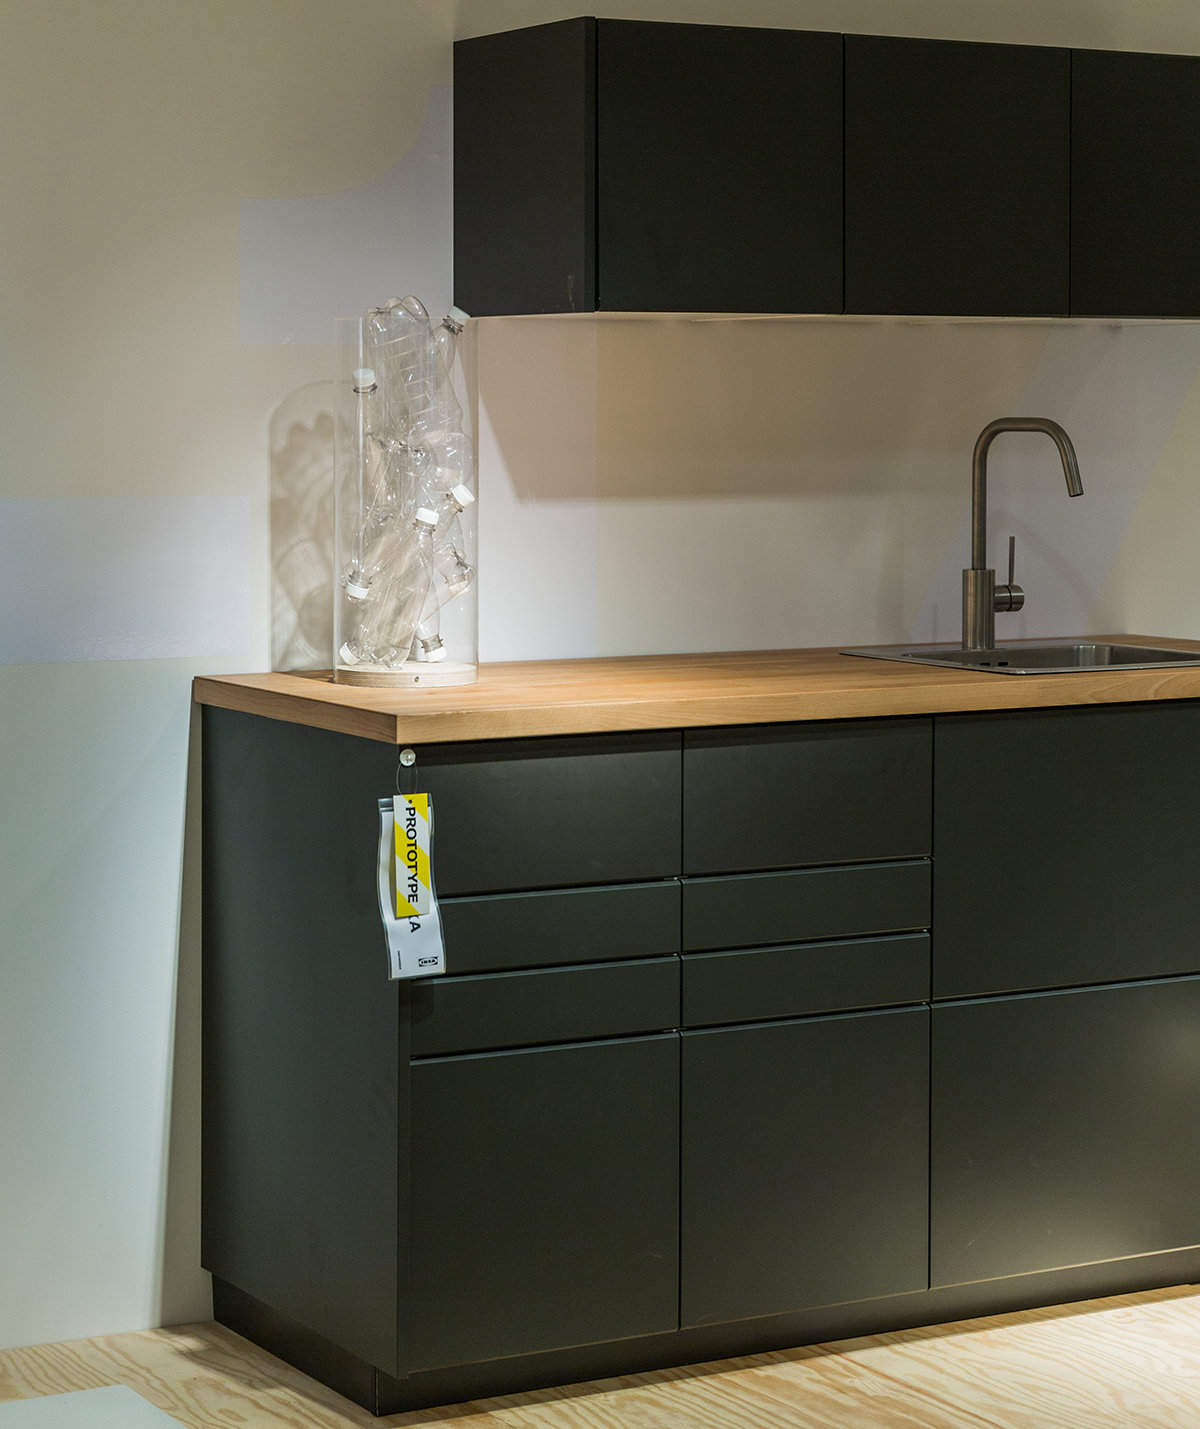 ikea is turning recycled bottles into kitchen cabinets real simple. Black Bedroom Furniture Sets. Home Design Ideas